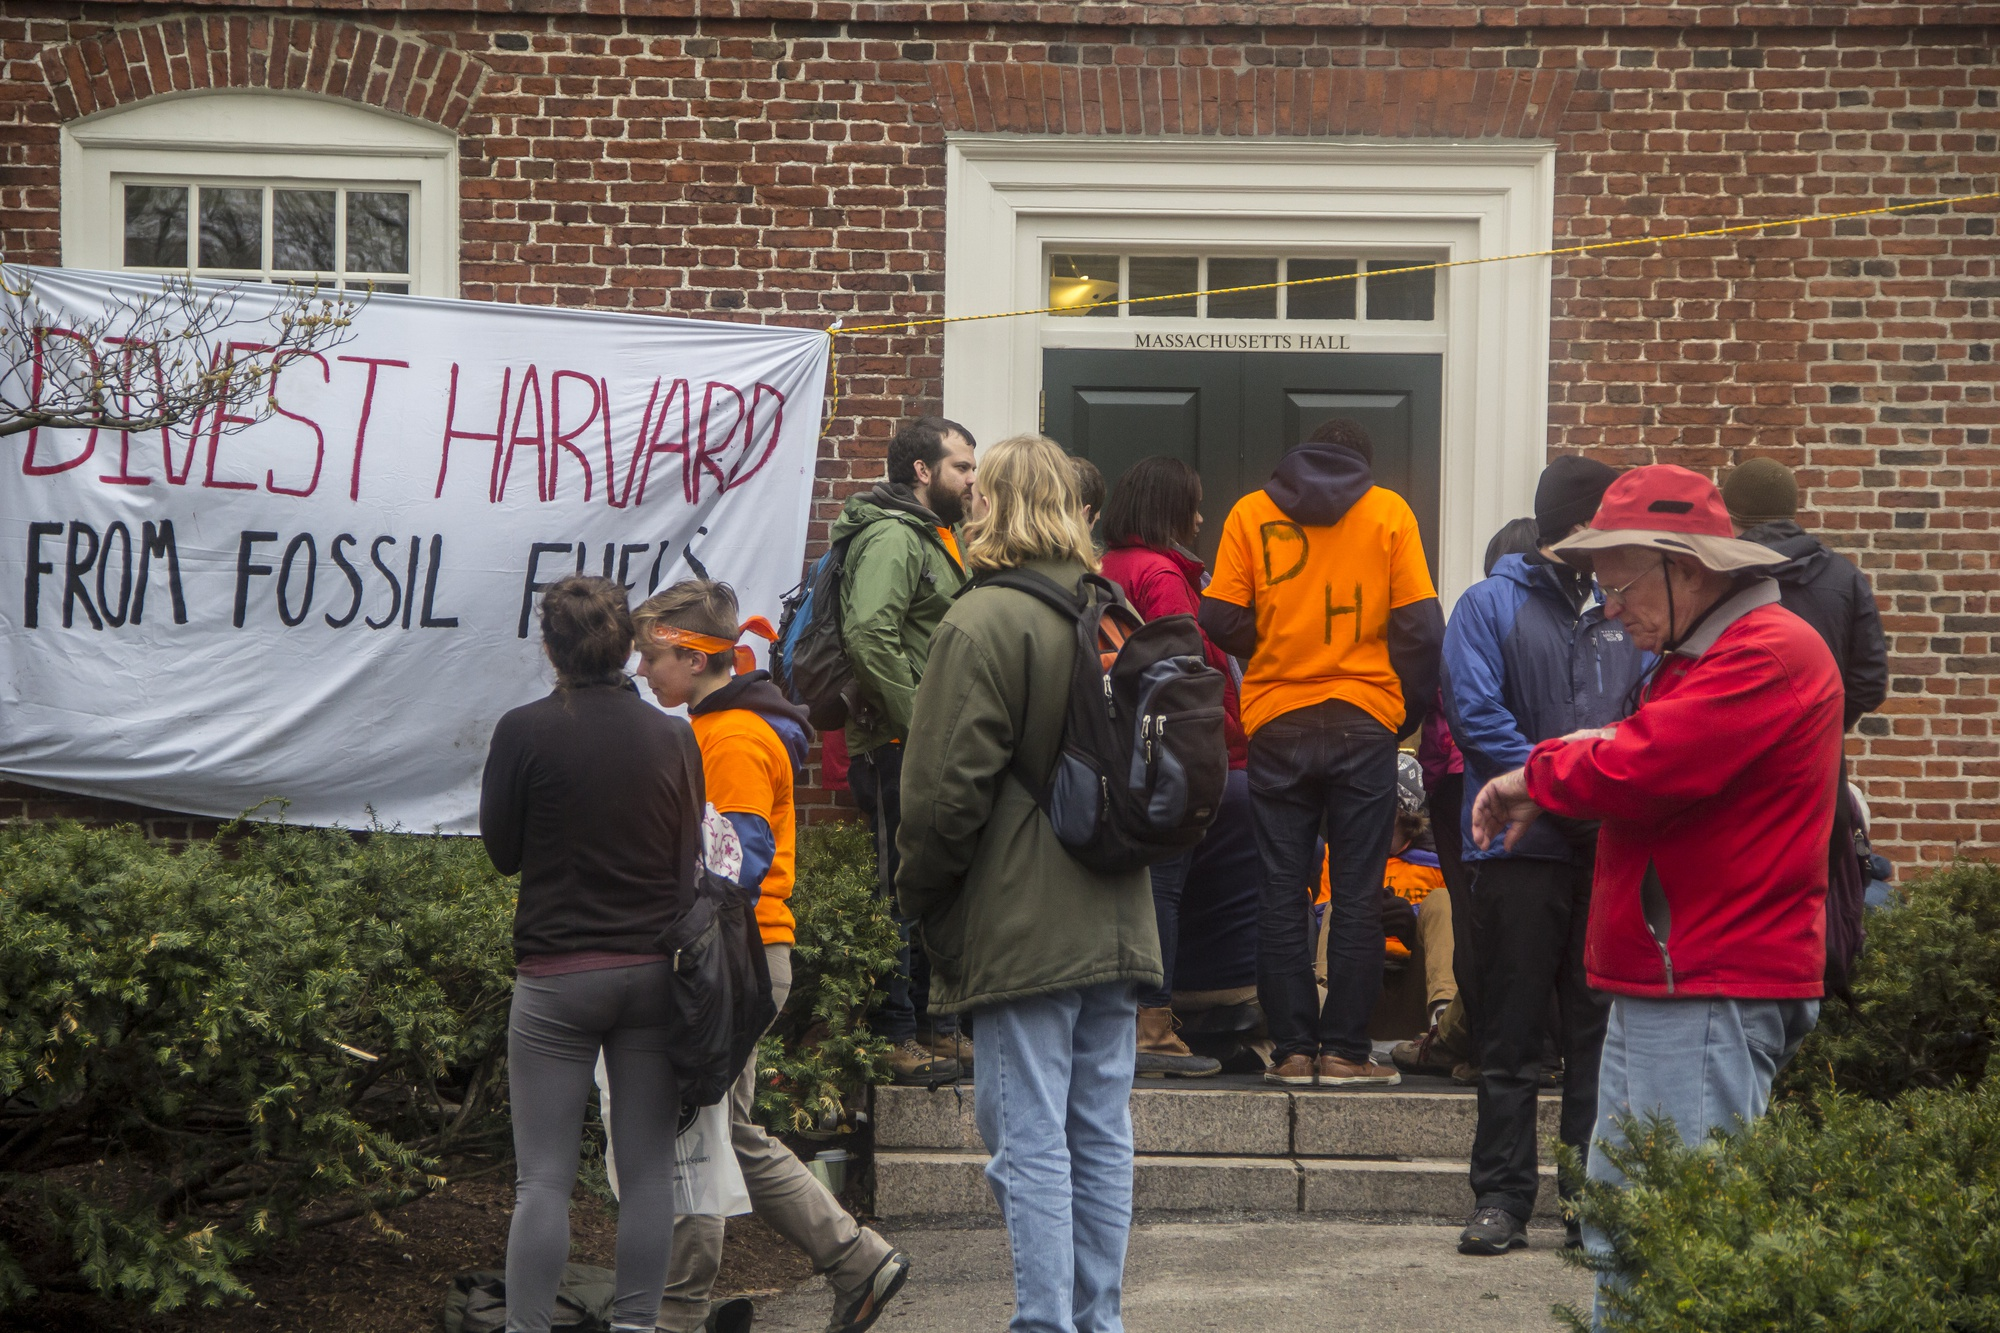 Divest Harvard activists blockaded one of the entrances in front of Massachusetts Hall to protest against the University's continued investment in various fossil fuel companies.